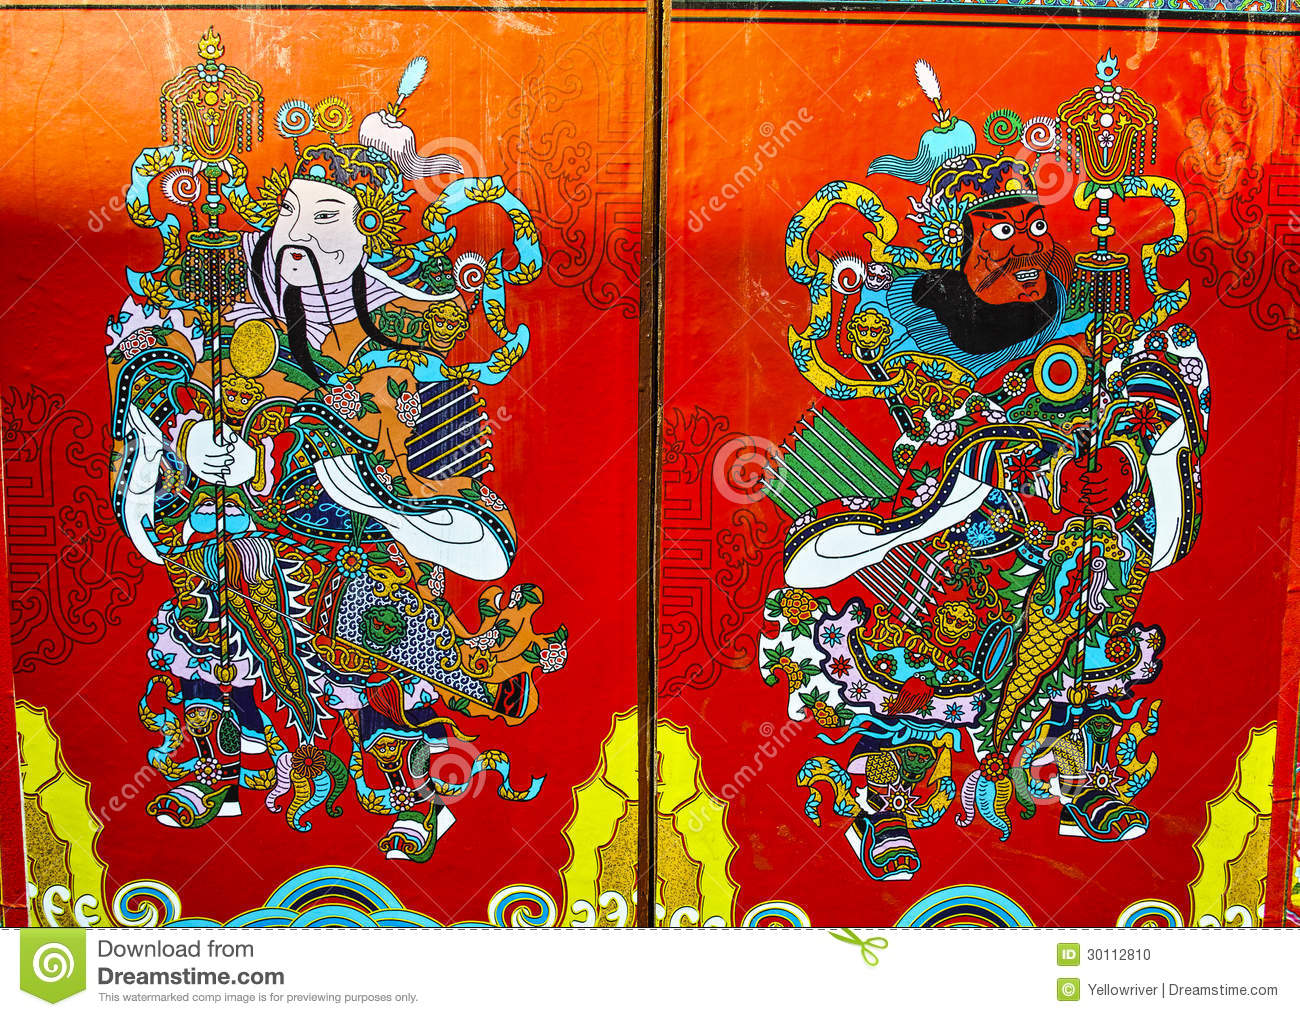 sc 1 st  Dreamstime.com & Chinese Door God Stock Photos - Royalty Free Images